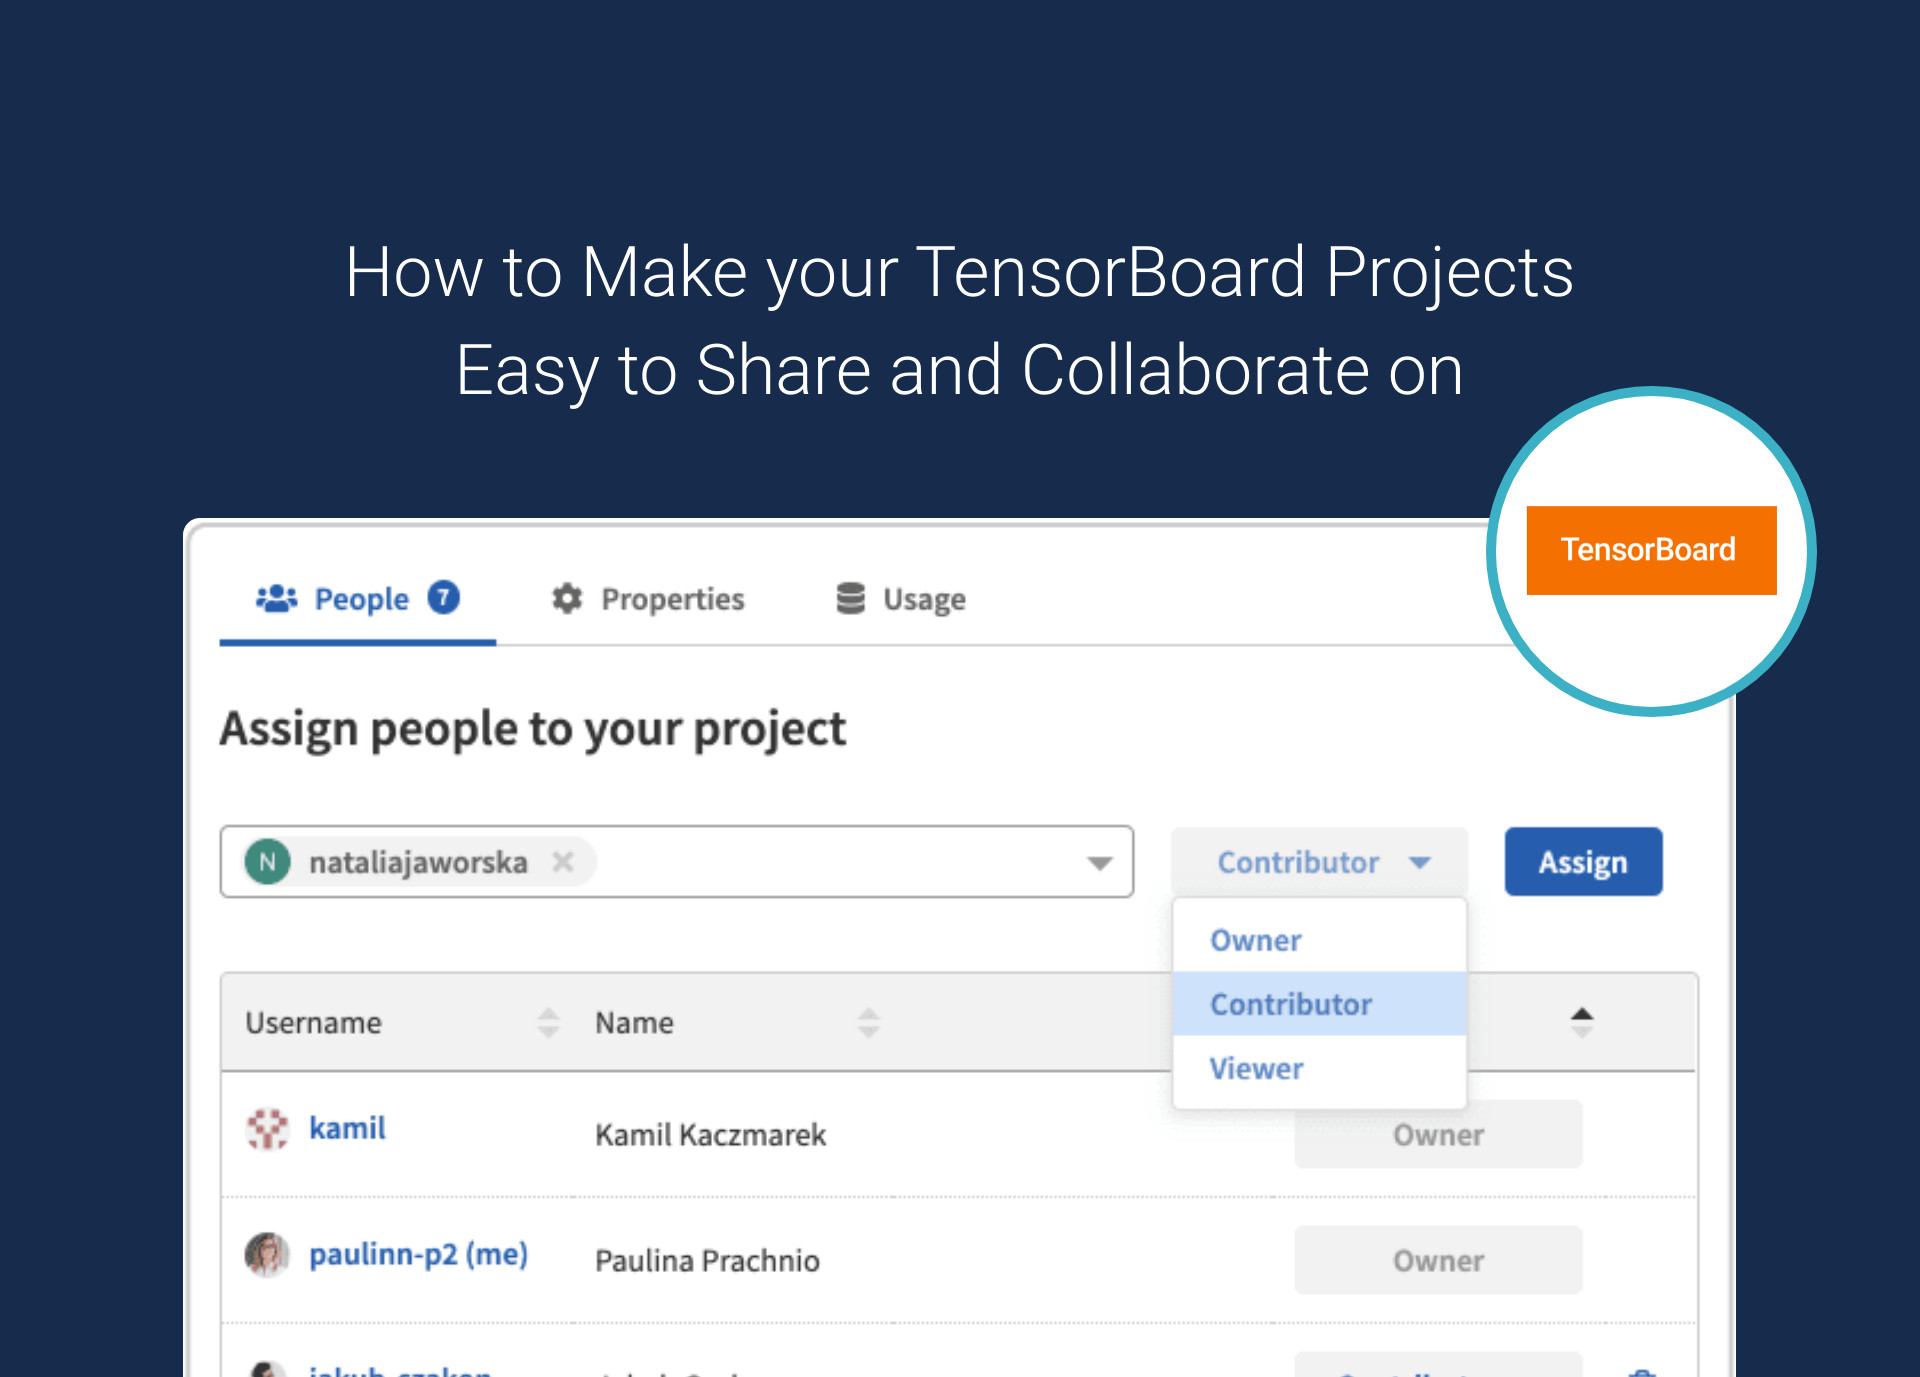 How to Make your TensorBoard Projects Easy to Share and Collaborate on